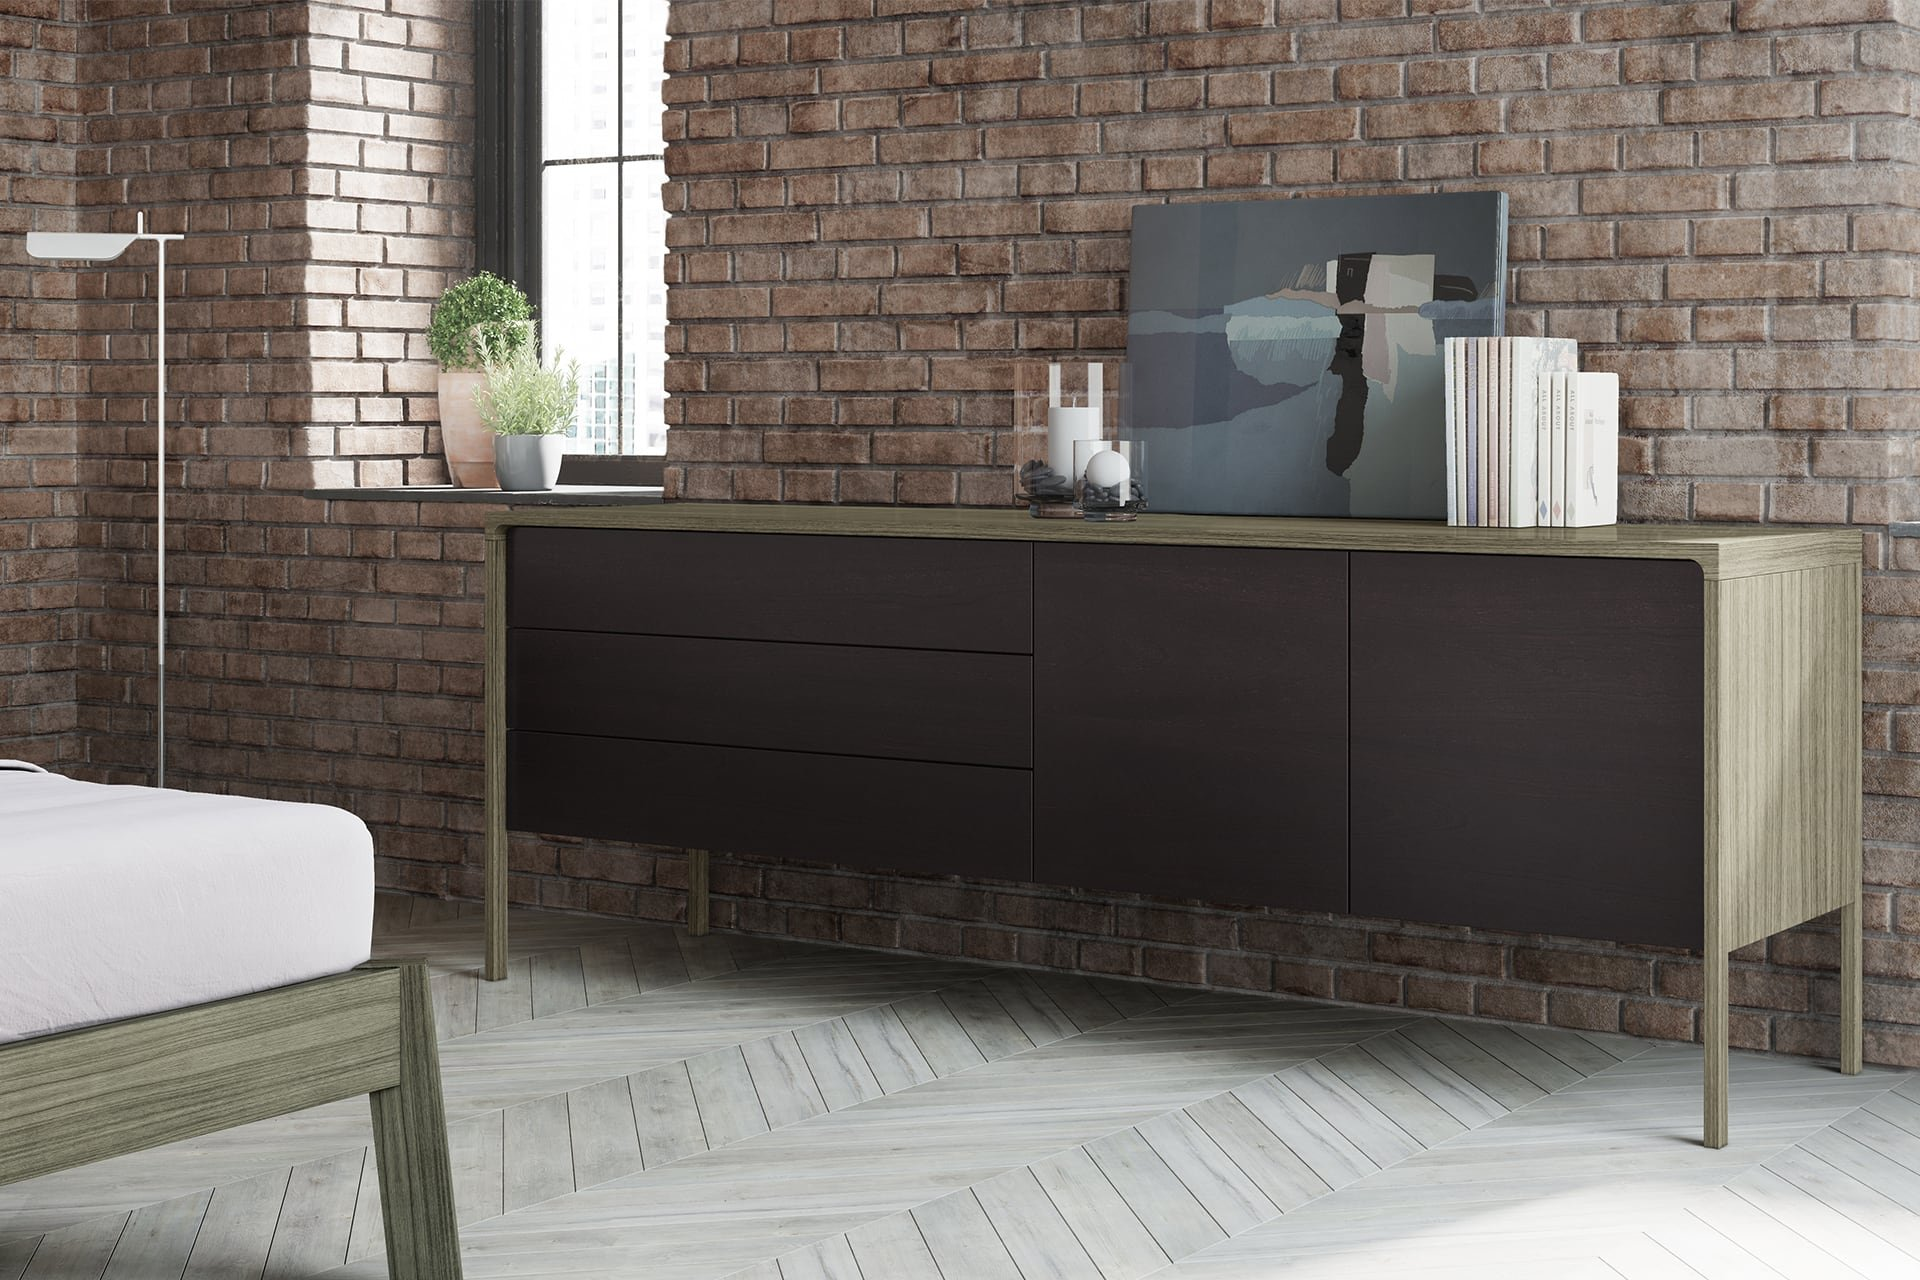 Tactile Sideboard cabinet from Punt Mobles, designed by Terence Woodgate